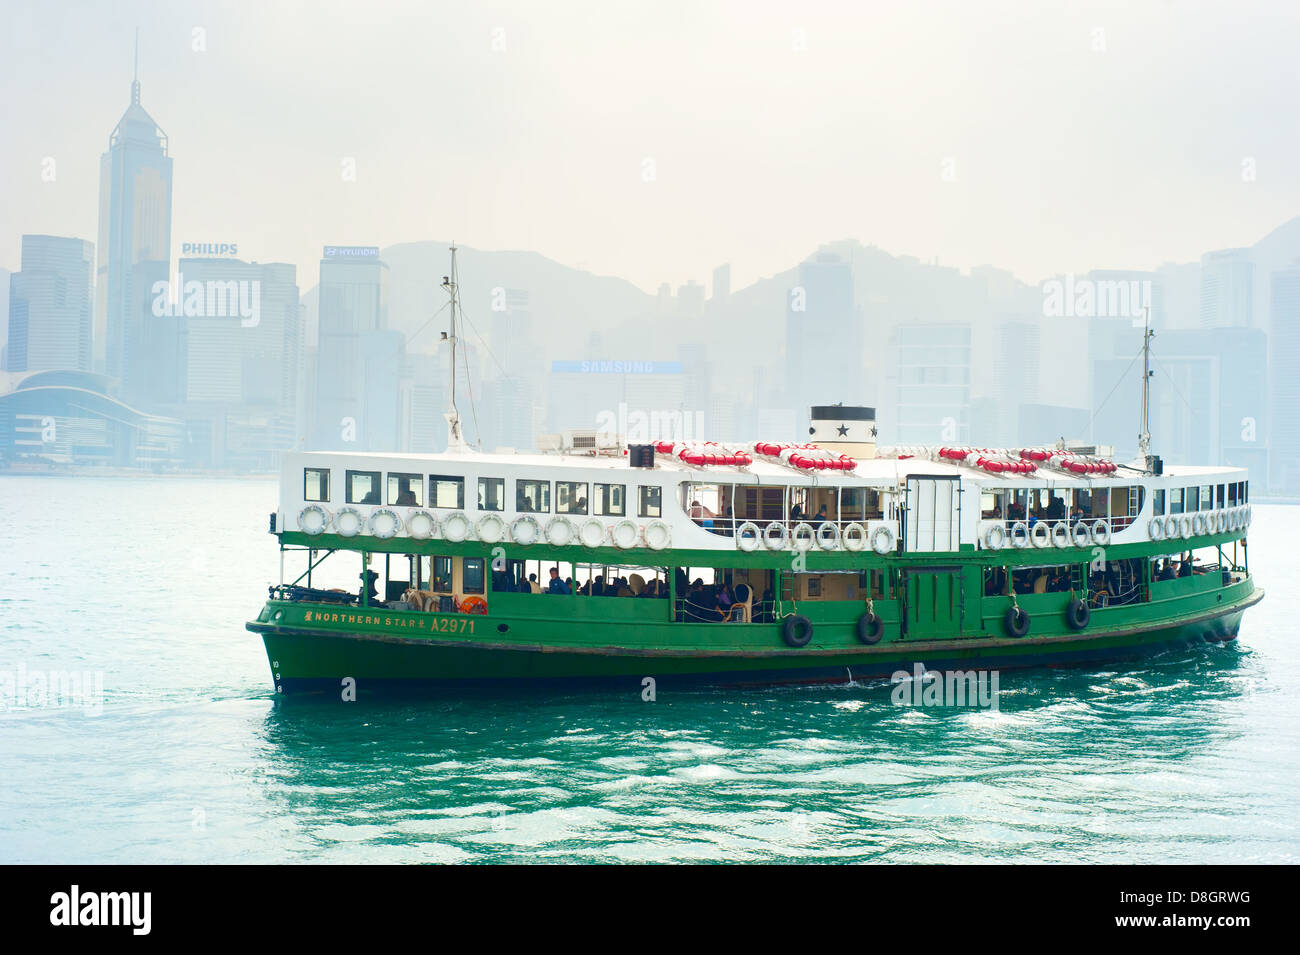 Ferry 'Solar star' on the way from Hong Kong to Kowloon island . - Stock Image